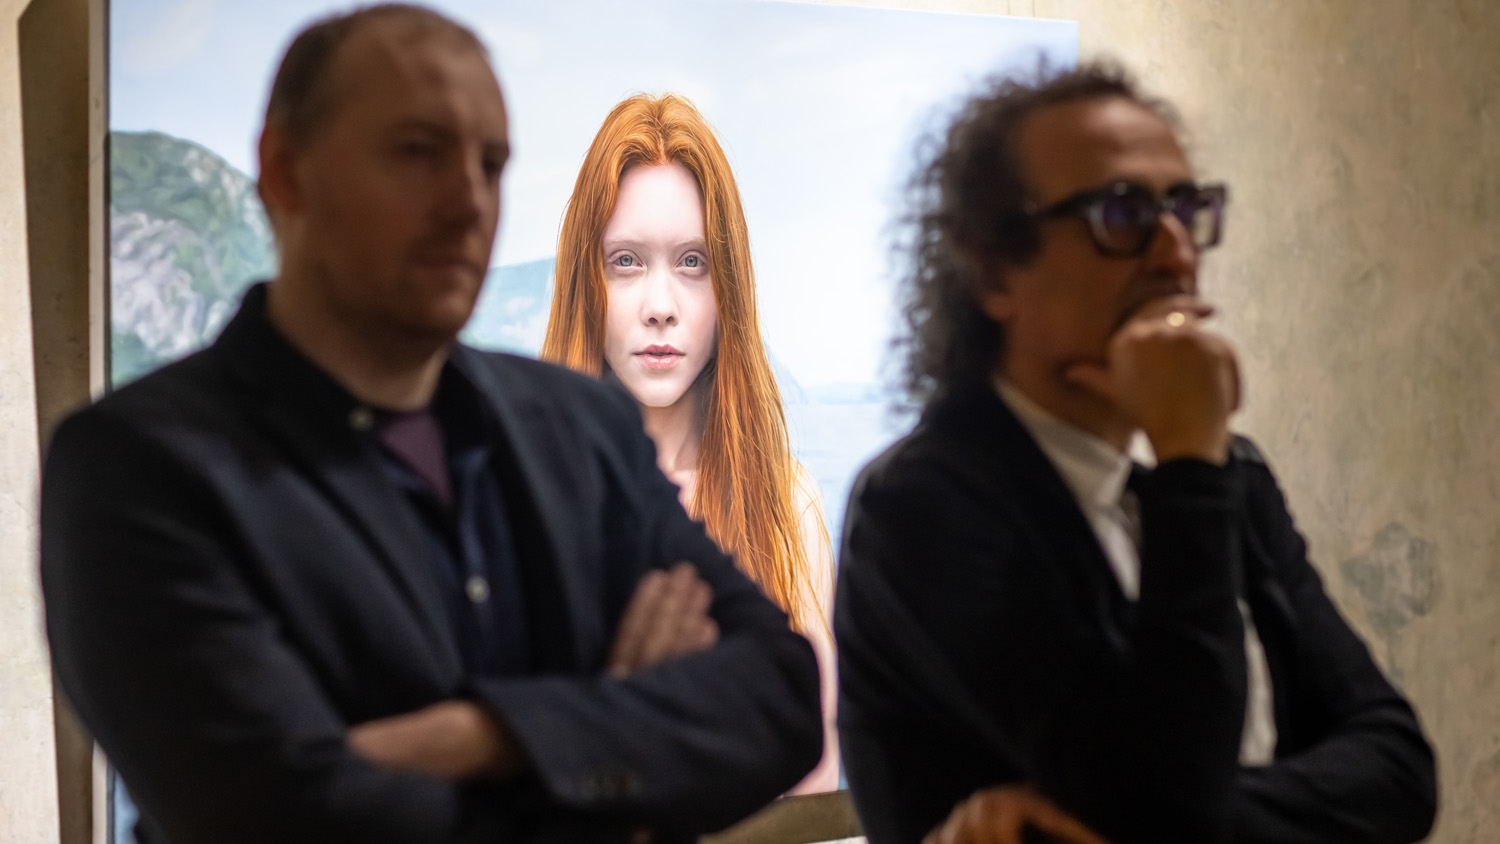 Jan Mikulka and Yigal Ozeri